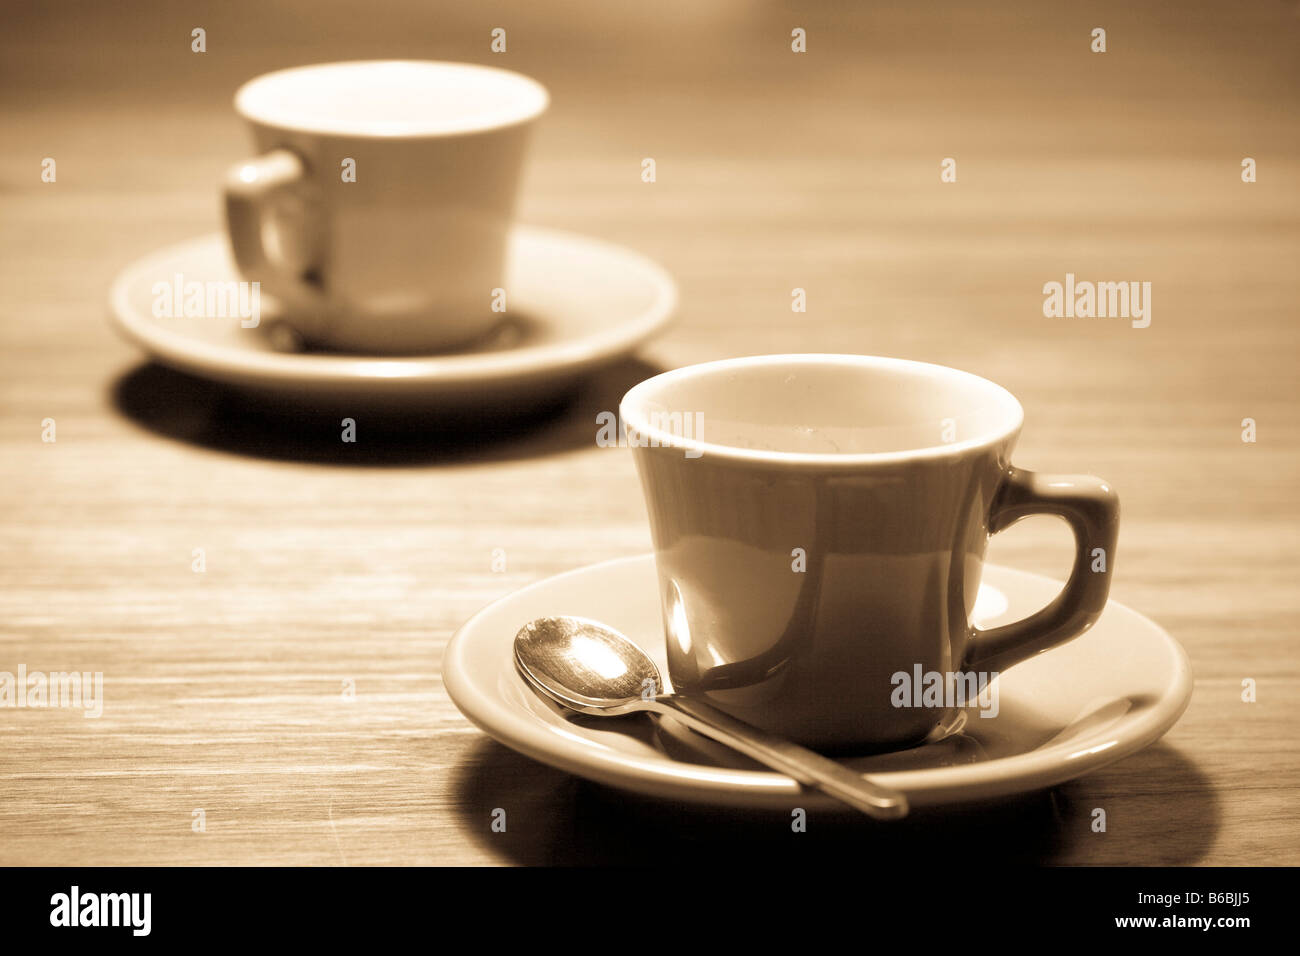 Two teacups on saucers - Stock Image